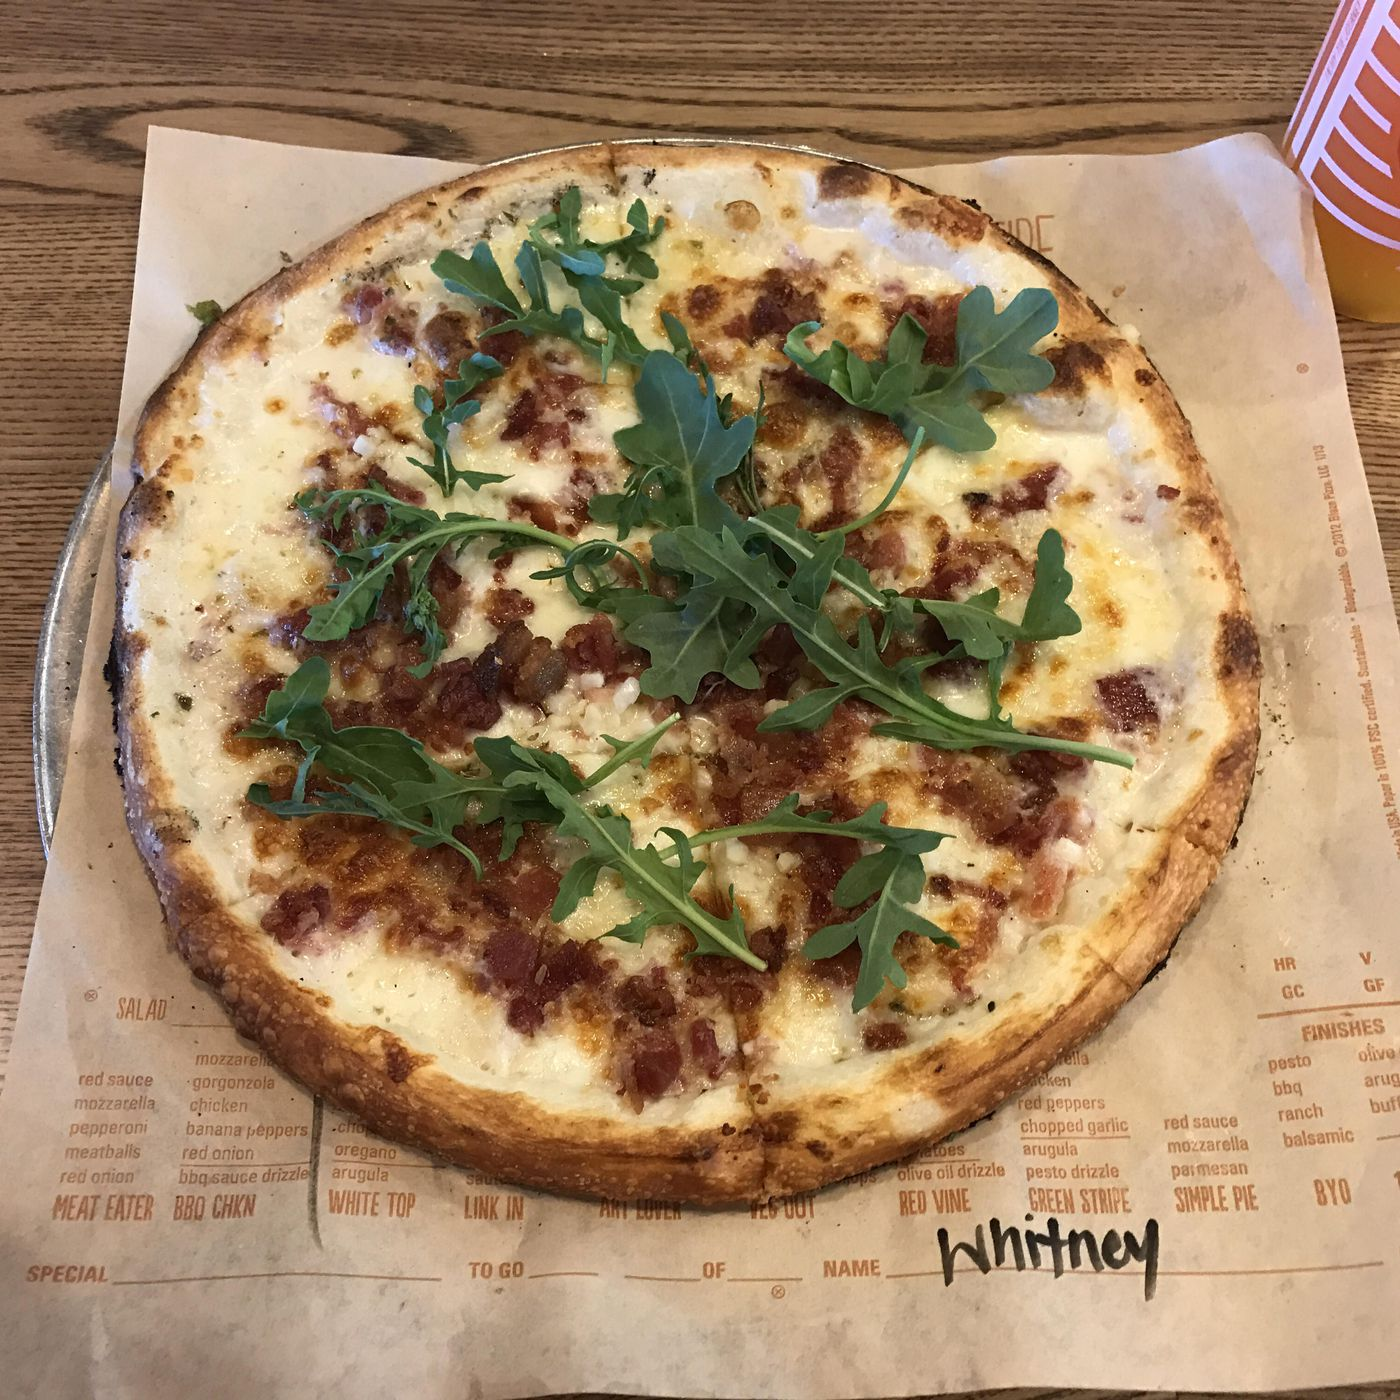 Lebron James Made 35 Million Investing In Blaze Pizza So I Had To